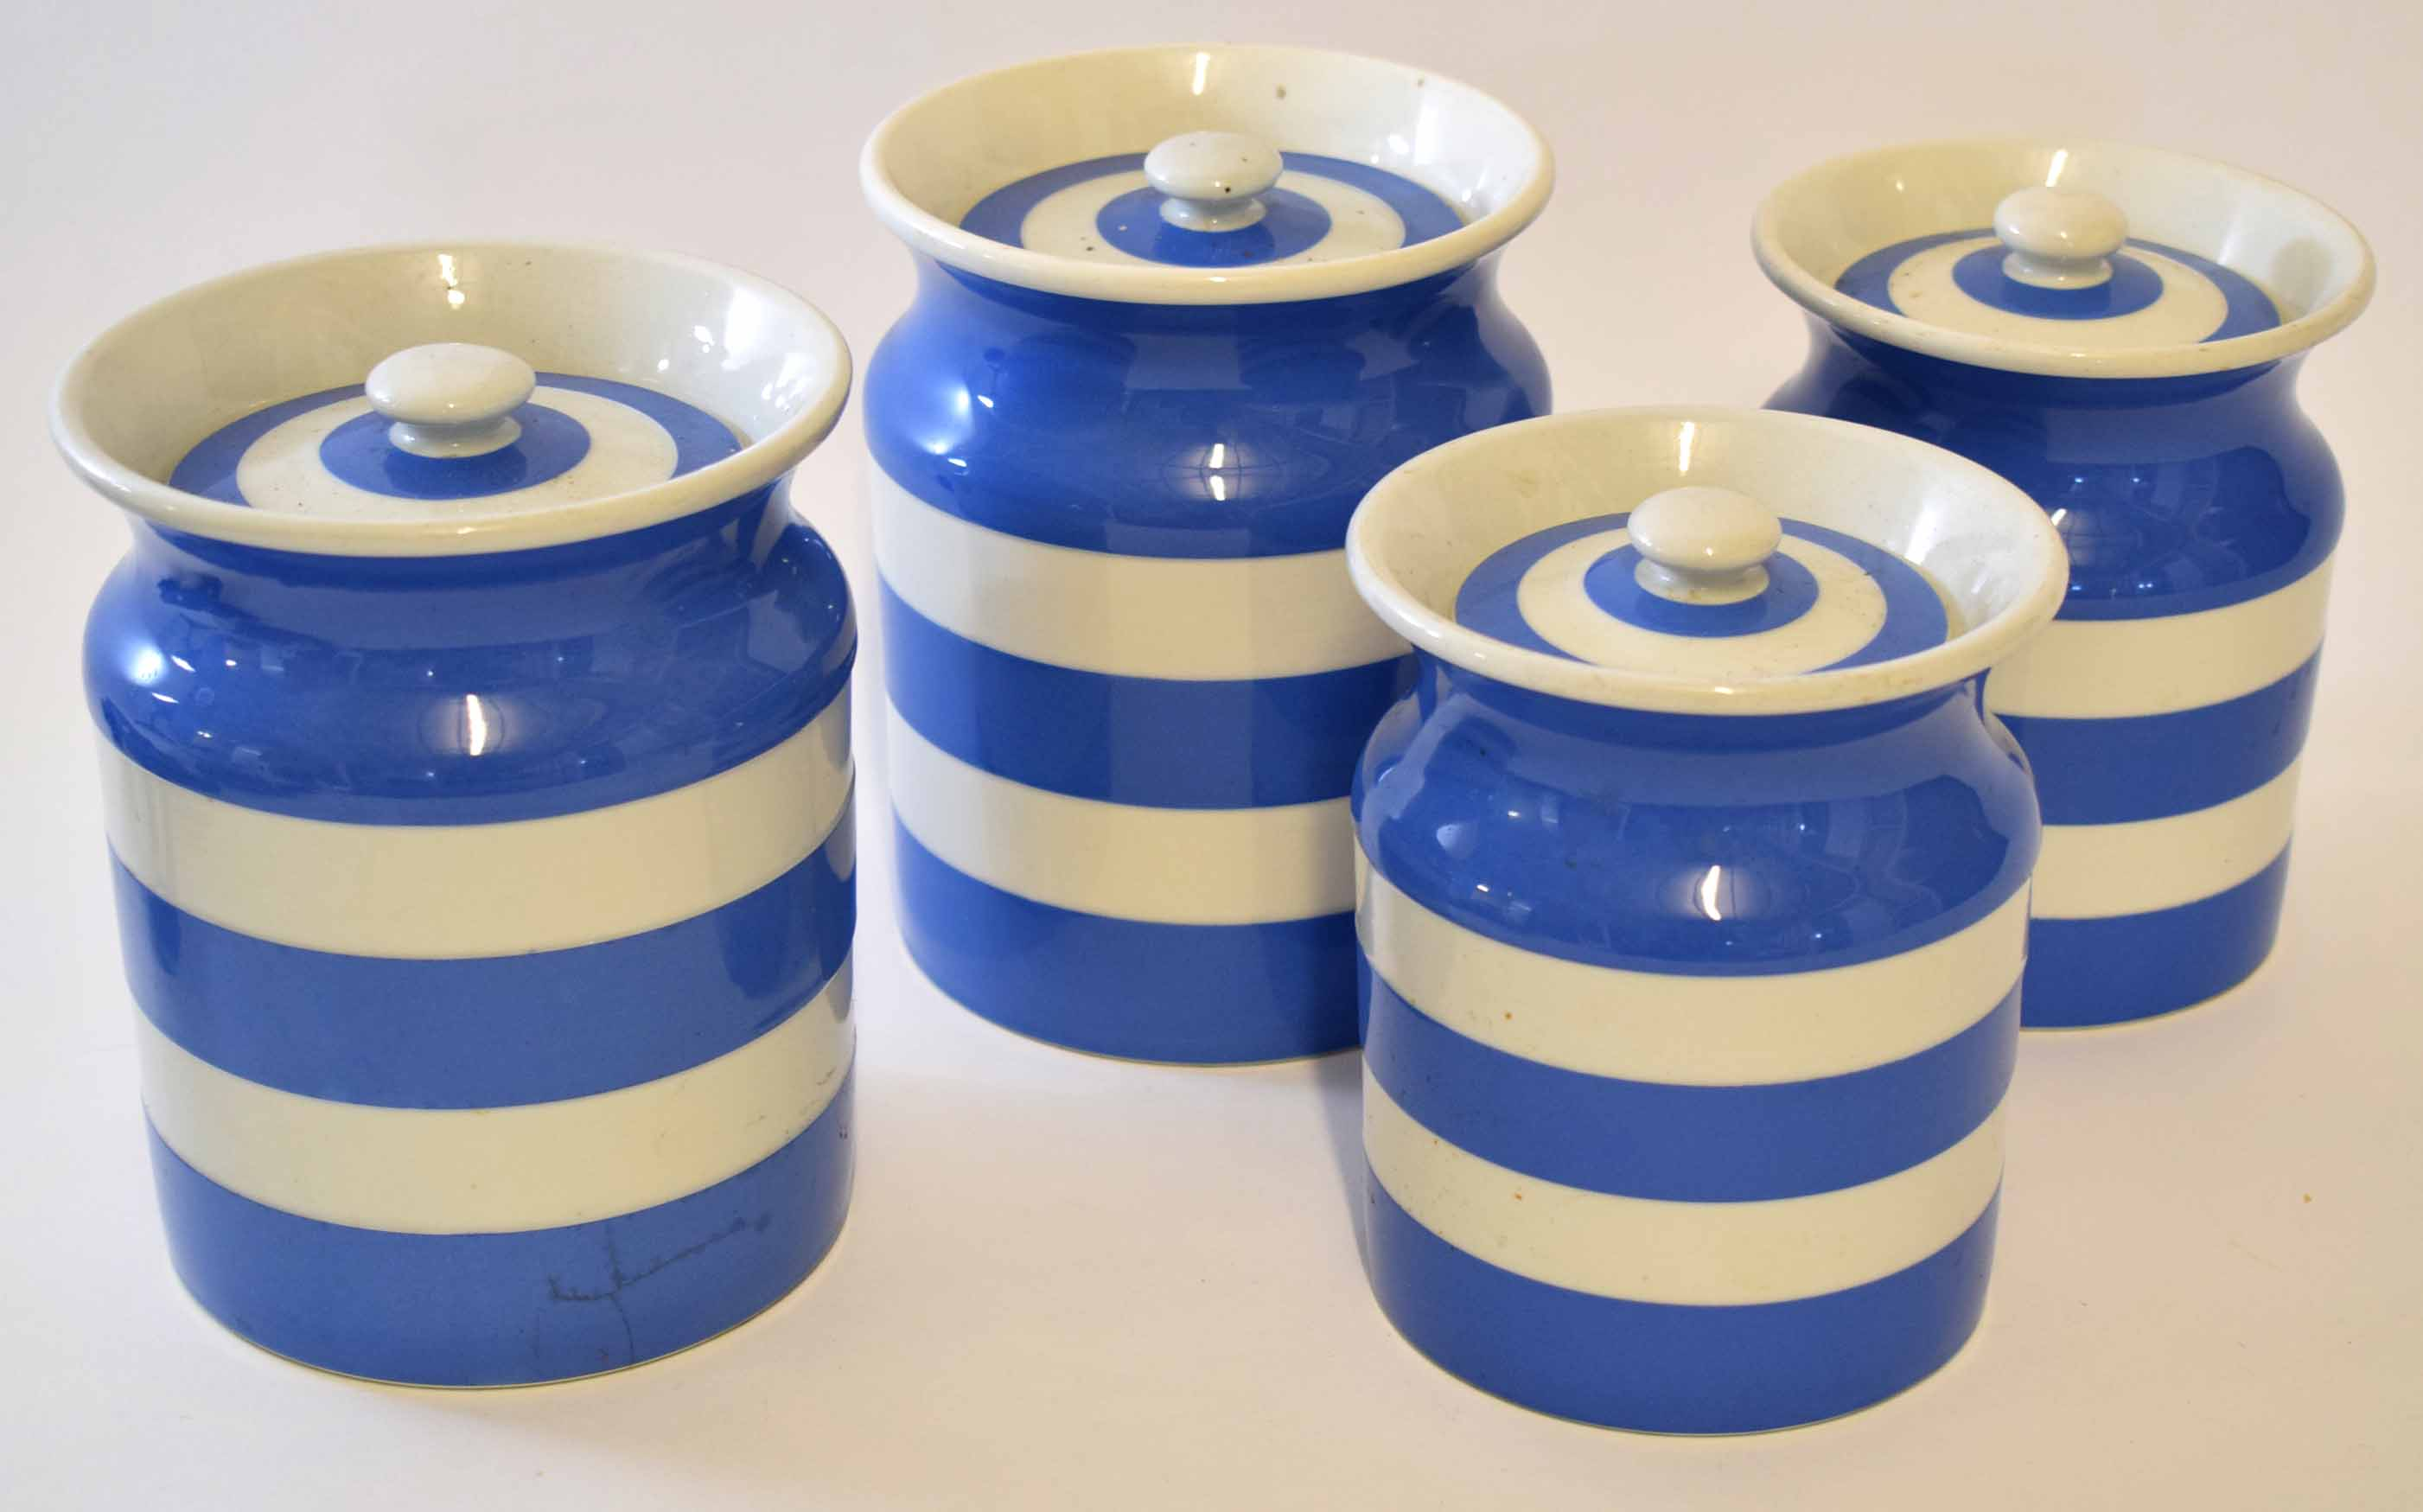 Lot 215 - Group of T G Green Cornish kitchen ware jars and covers with a blue circular design